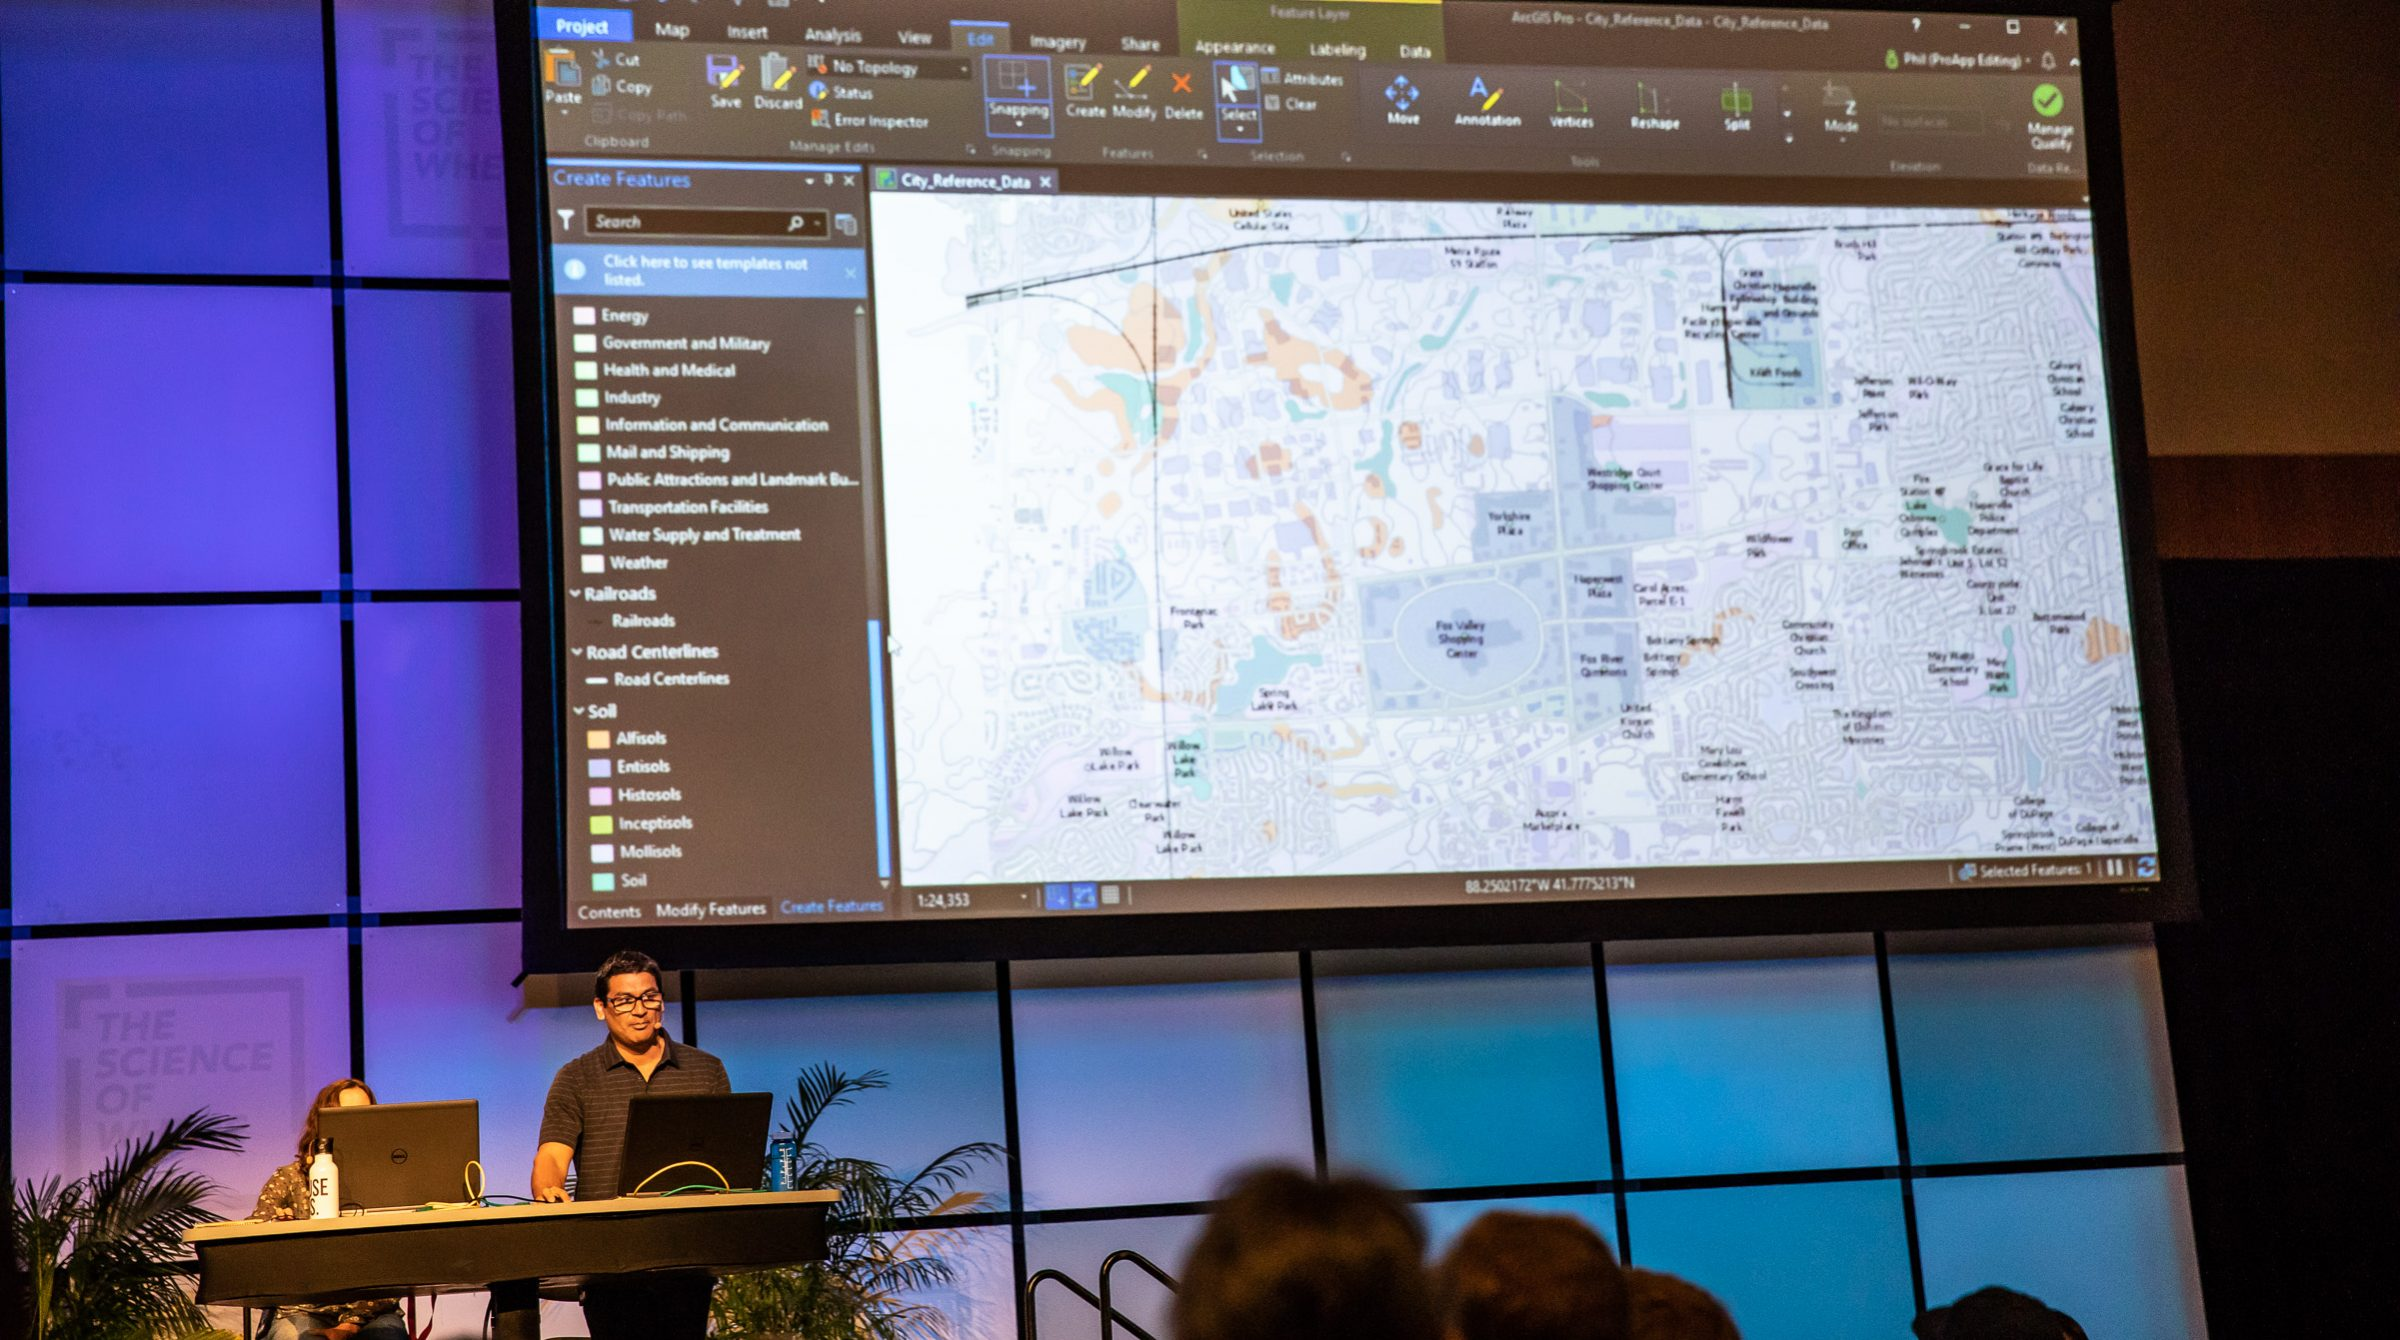 Session i ArcGIS Pro under Esri User Conference